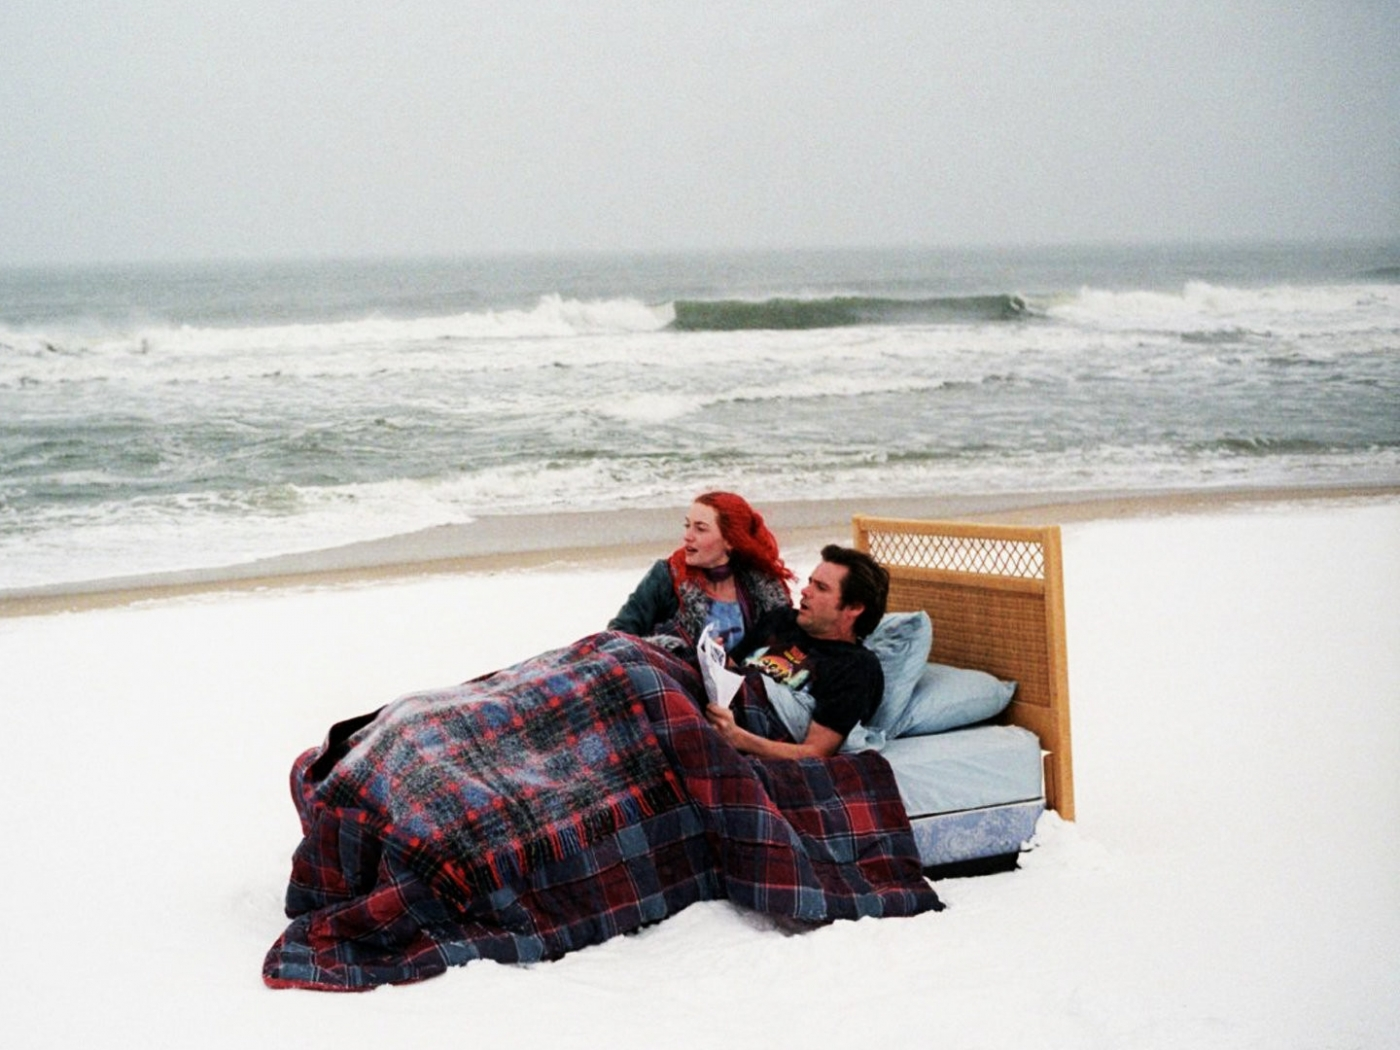 http://1.bp.blogspot.com/-FkX8FwPL2Js/T-__jJvROdI/AAAAAAAACZ0/w3nIaKbd_WI/s1600/eternal_sunshine_of_the_spotless_mind_sea_sand_beach_jim_carrey_kate_winslet_334_1400x1050.jpg